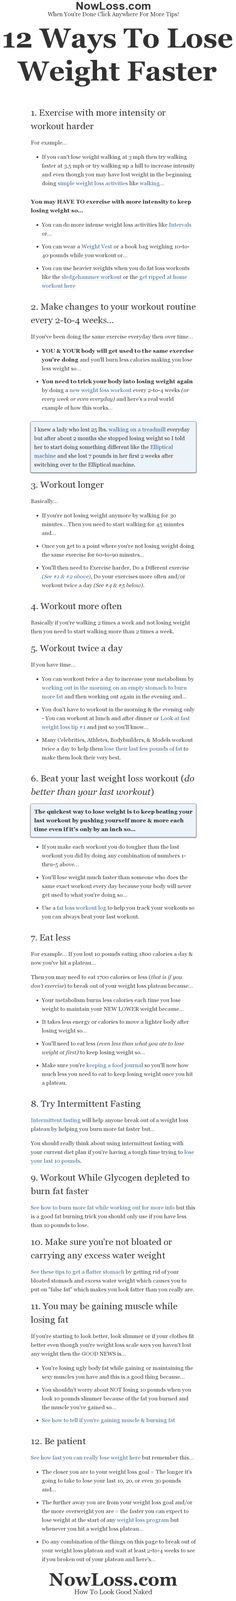 12 ways to lose weight faster or how to break out of a weight loss plateau